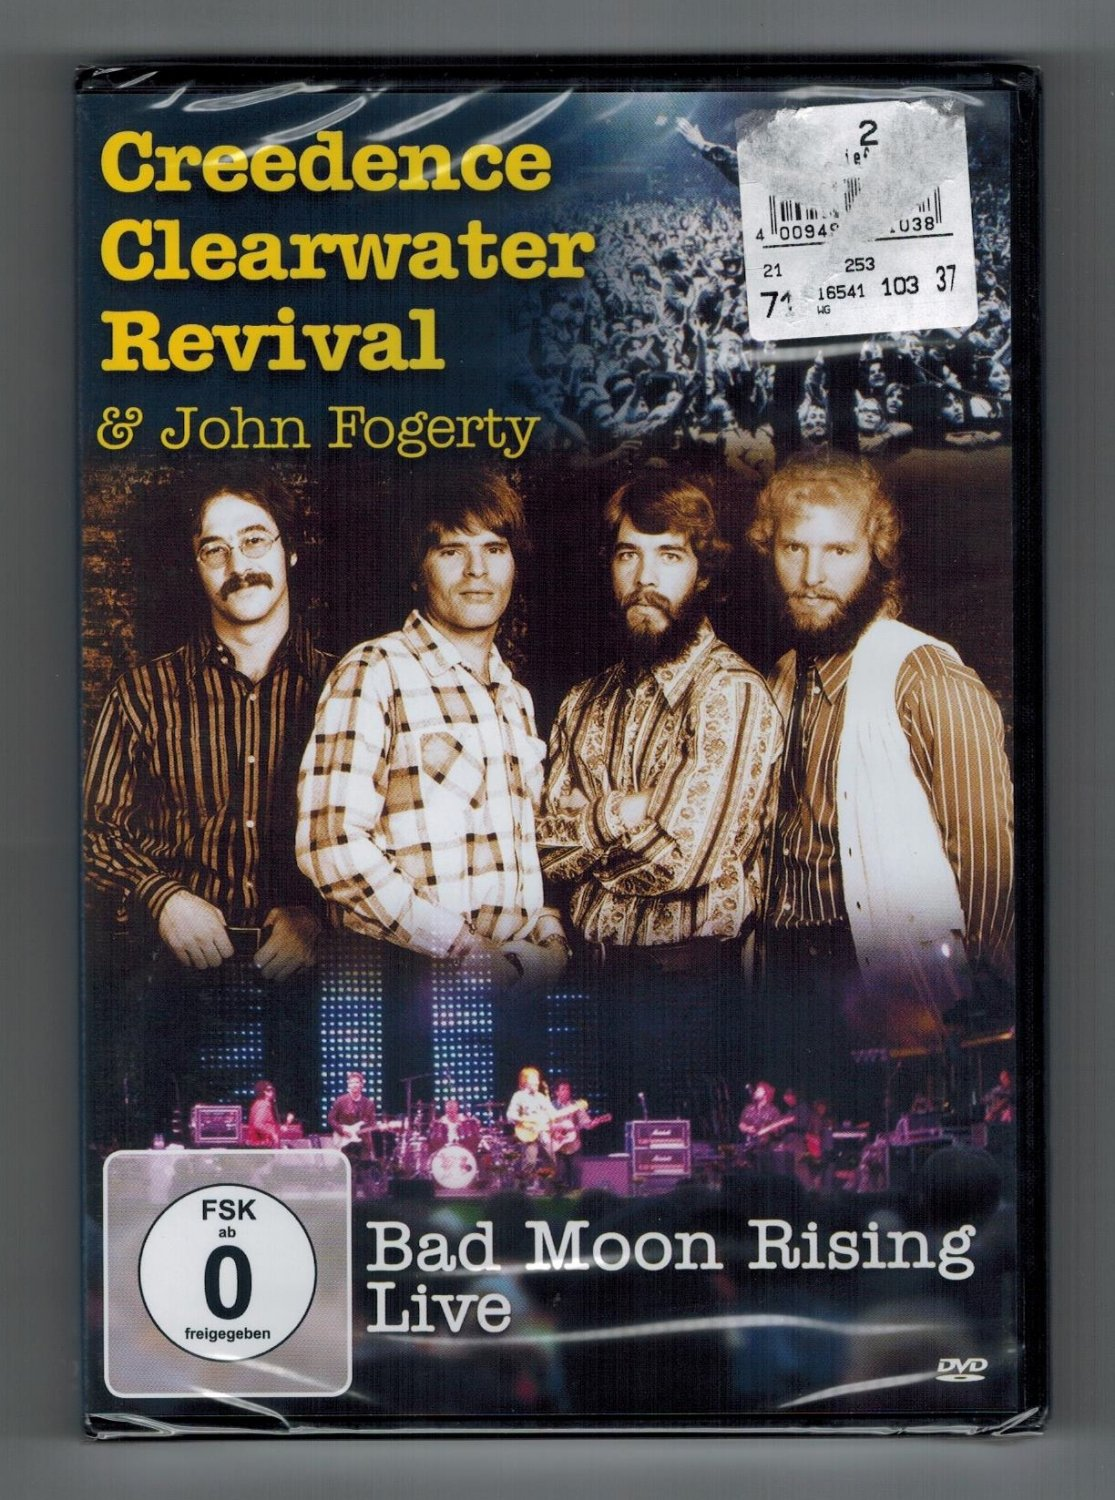 Creedence Clearwater Revival & John Fogerty Bad Moon Rising Live. OVP